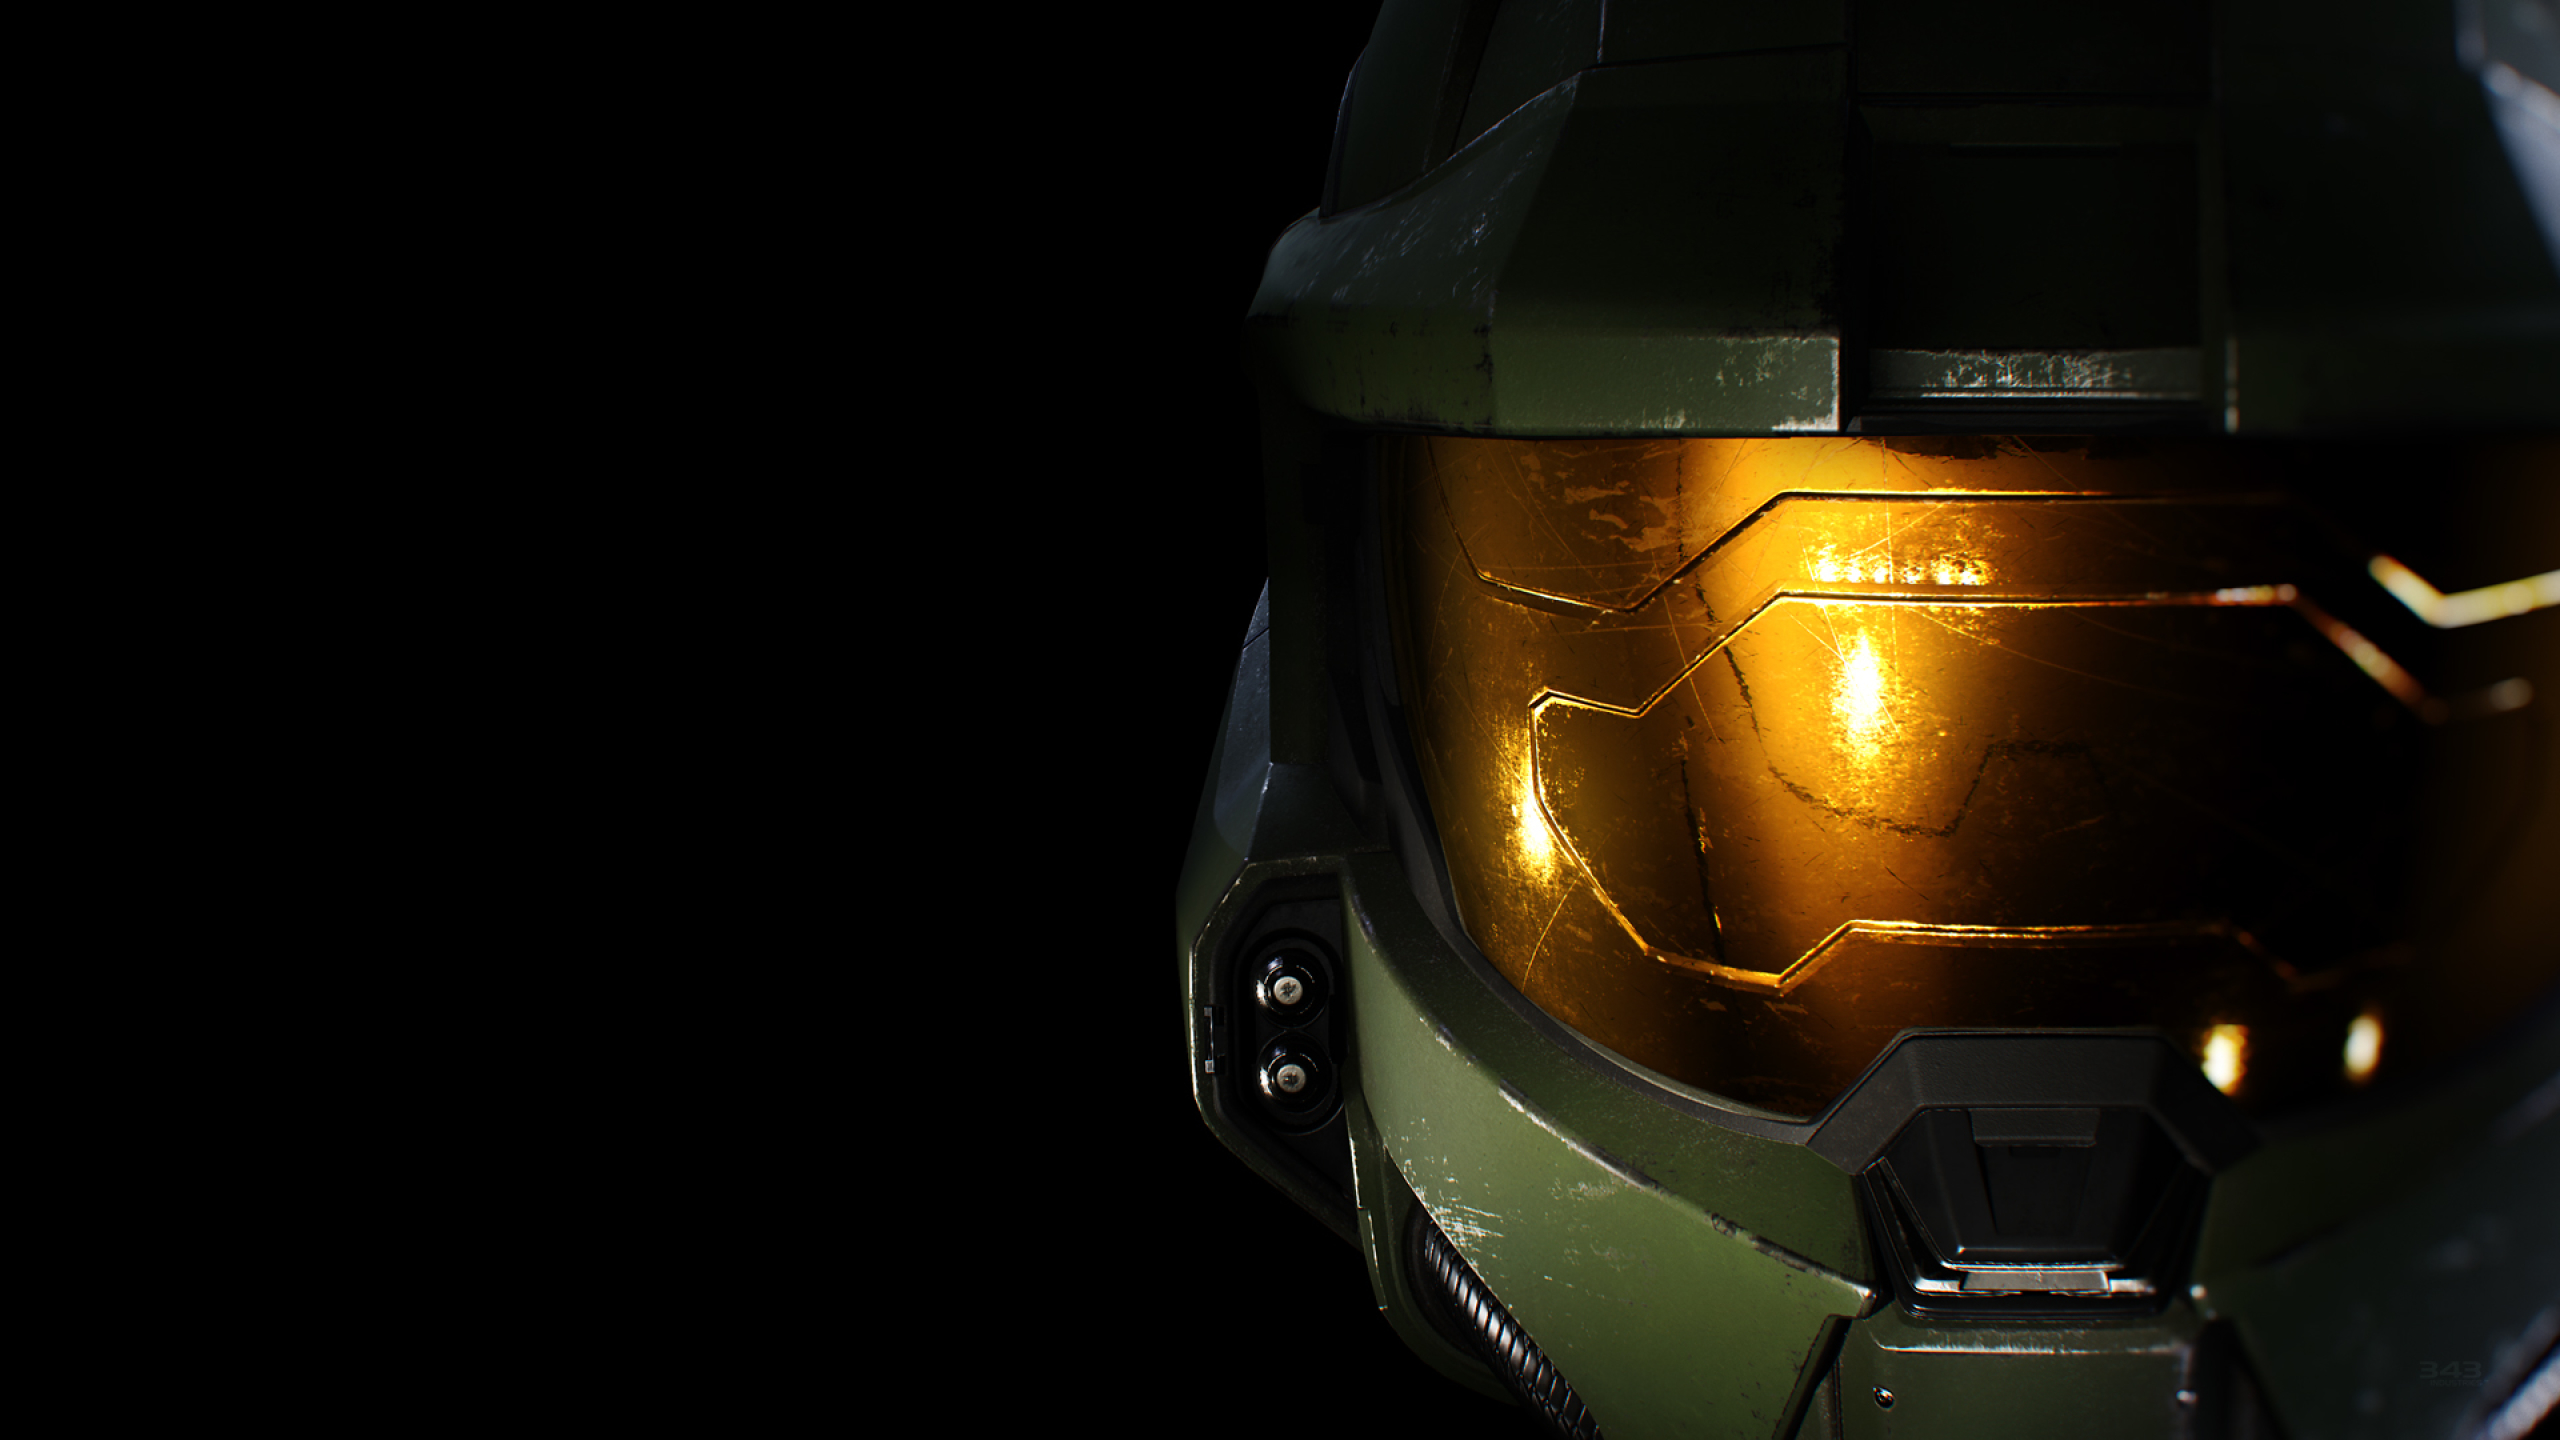 2560x1440 Microsoft Halo Infinite 1440p Resolution Wallpaper Hd Games 4k Wallpapers Images Photos And Background Wallpapers Den